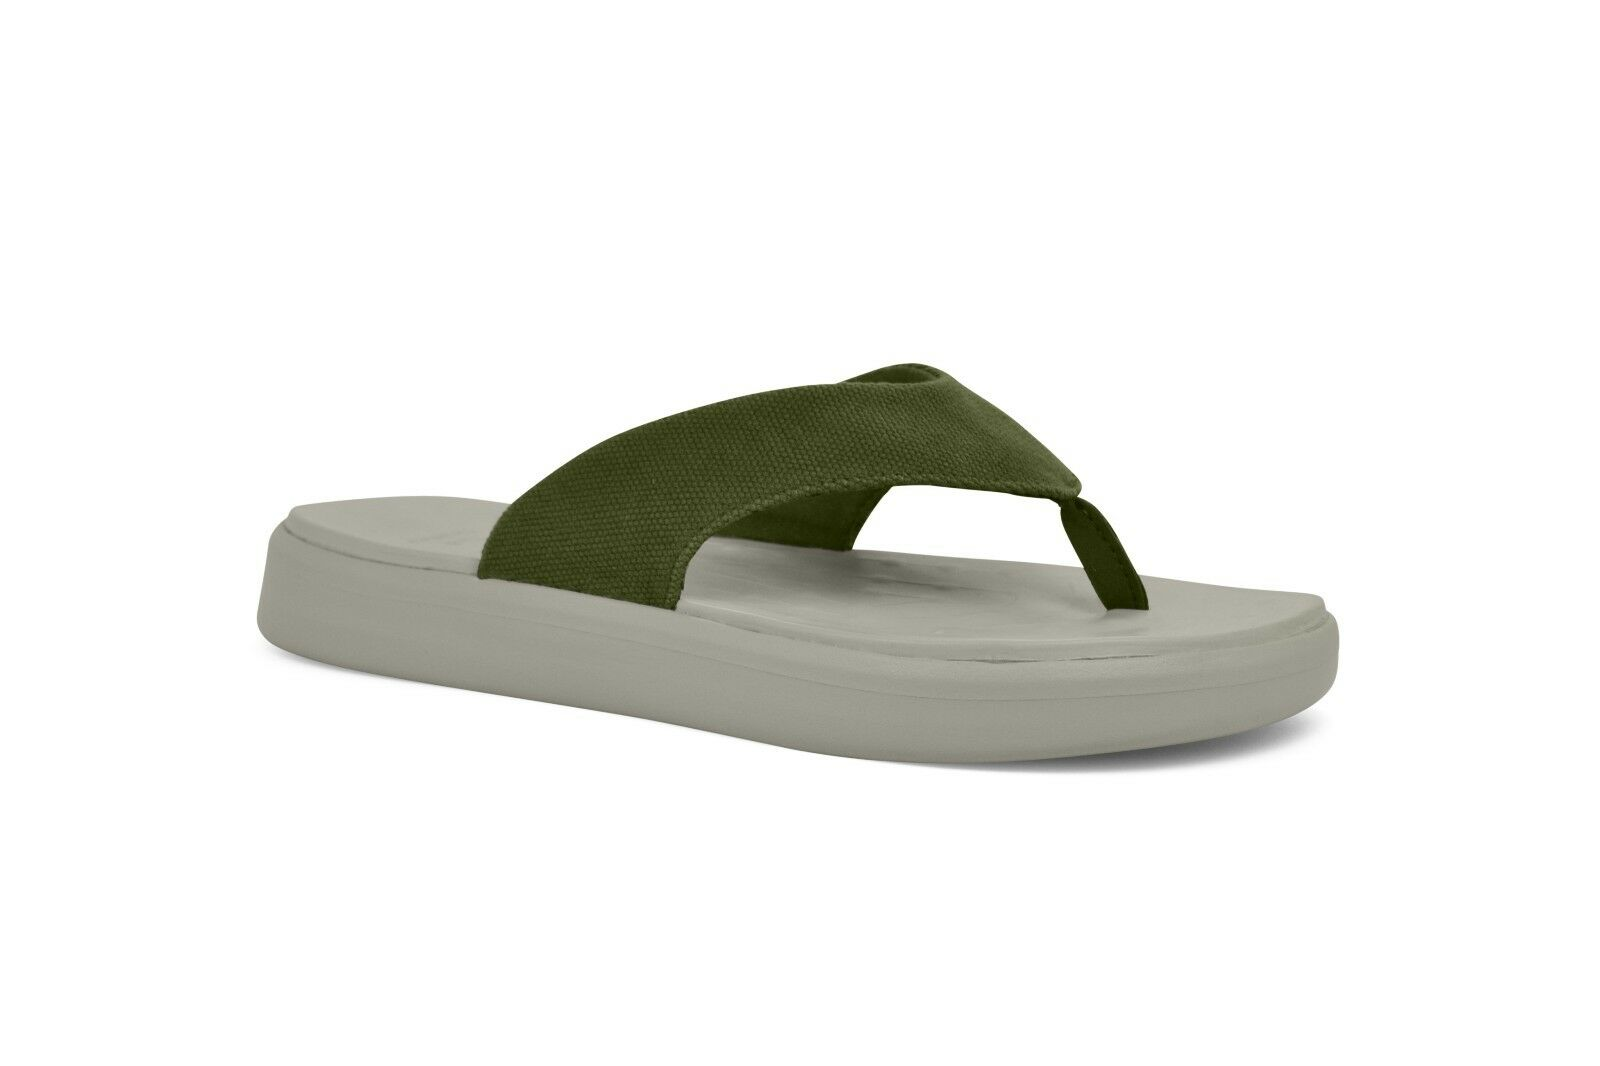 SoftScience The Skiff 3.0 Canvas Sandalen Zehentrenner Badelatschen Sage Green